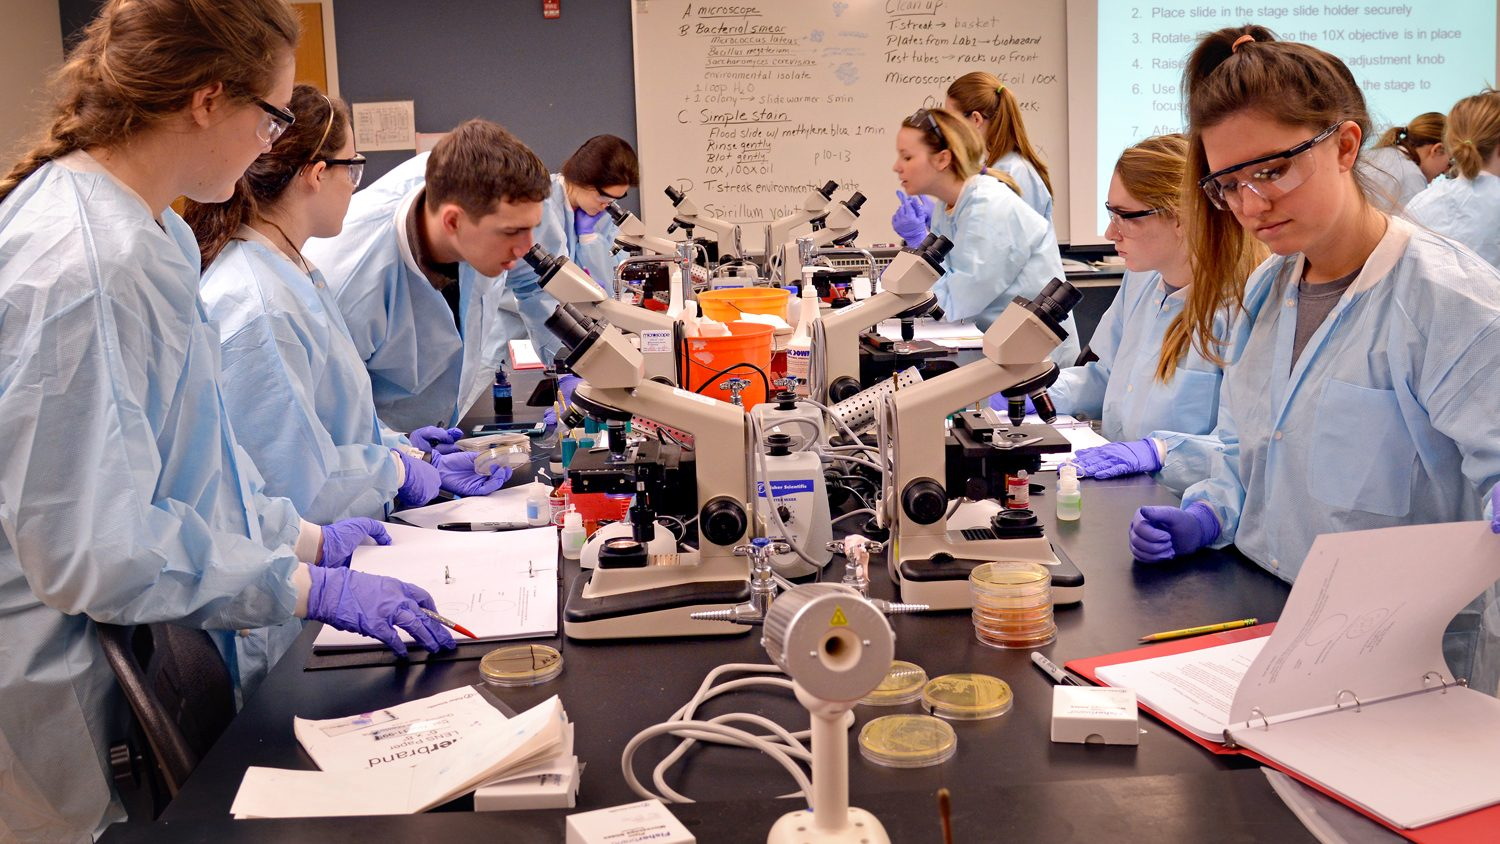 Students in a laboratory.